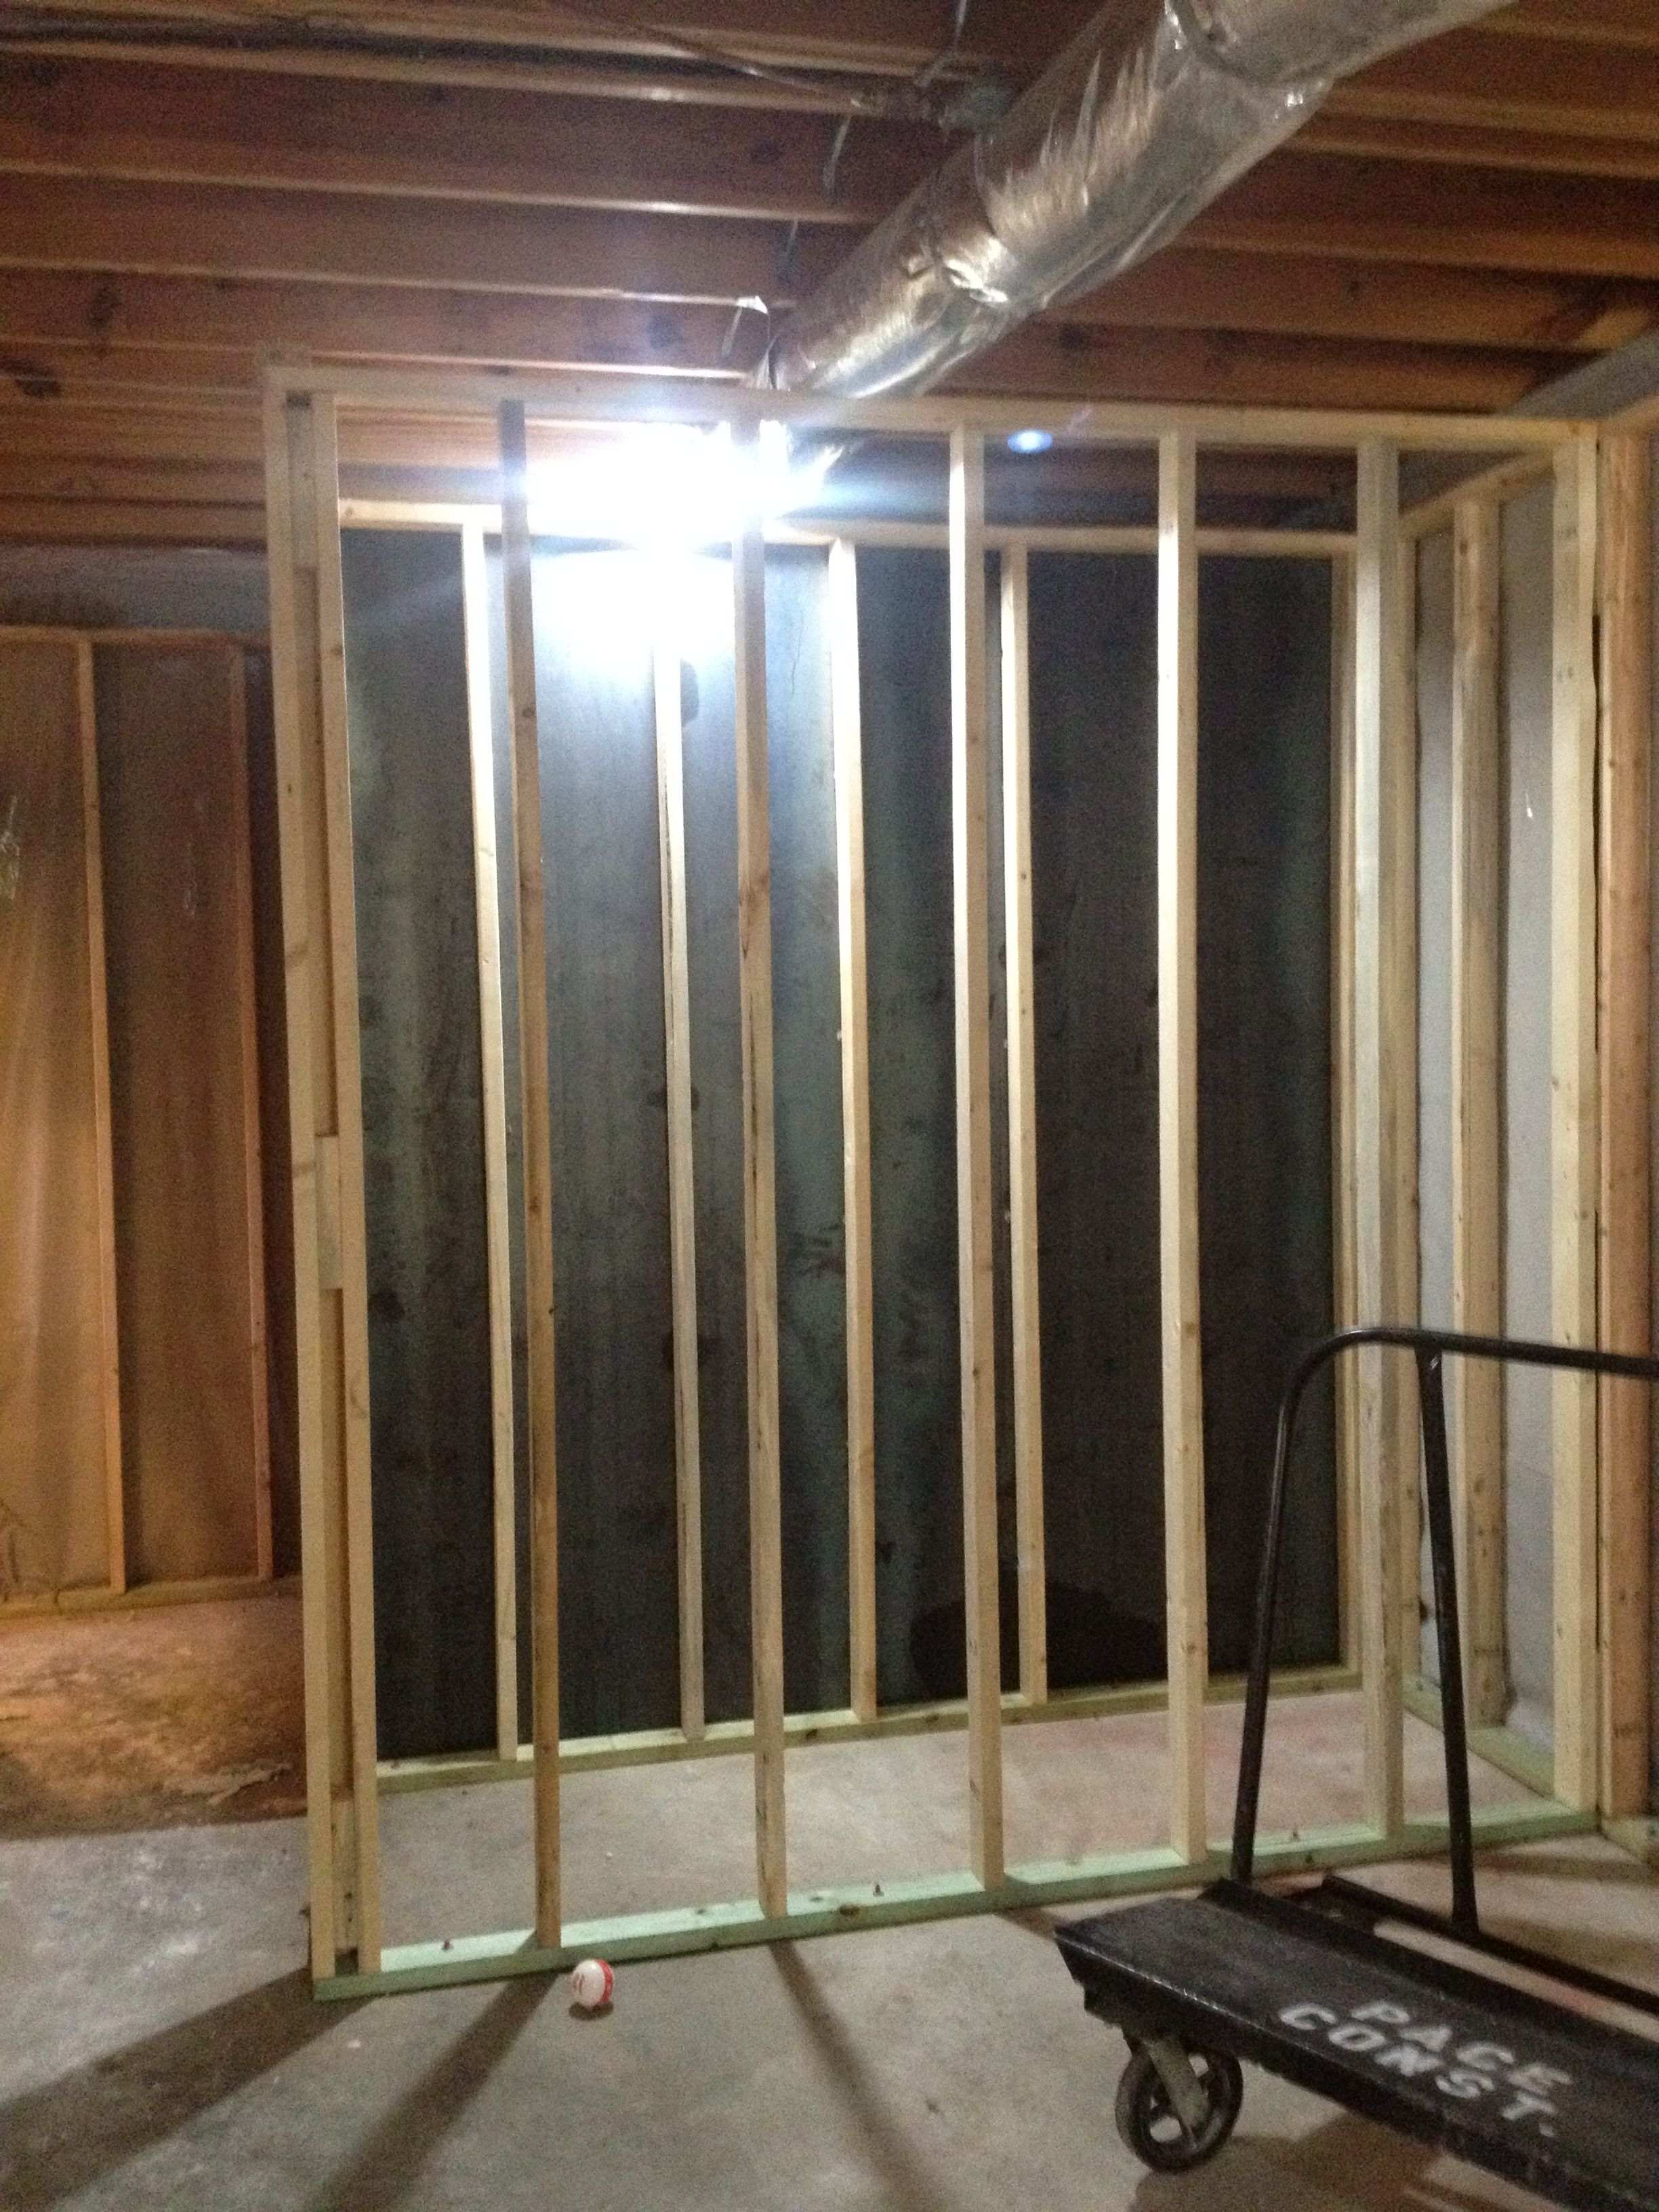 During the framing stage the bathroom wall was reinforced